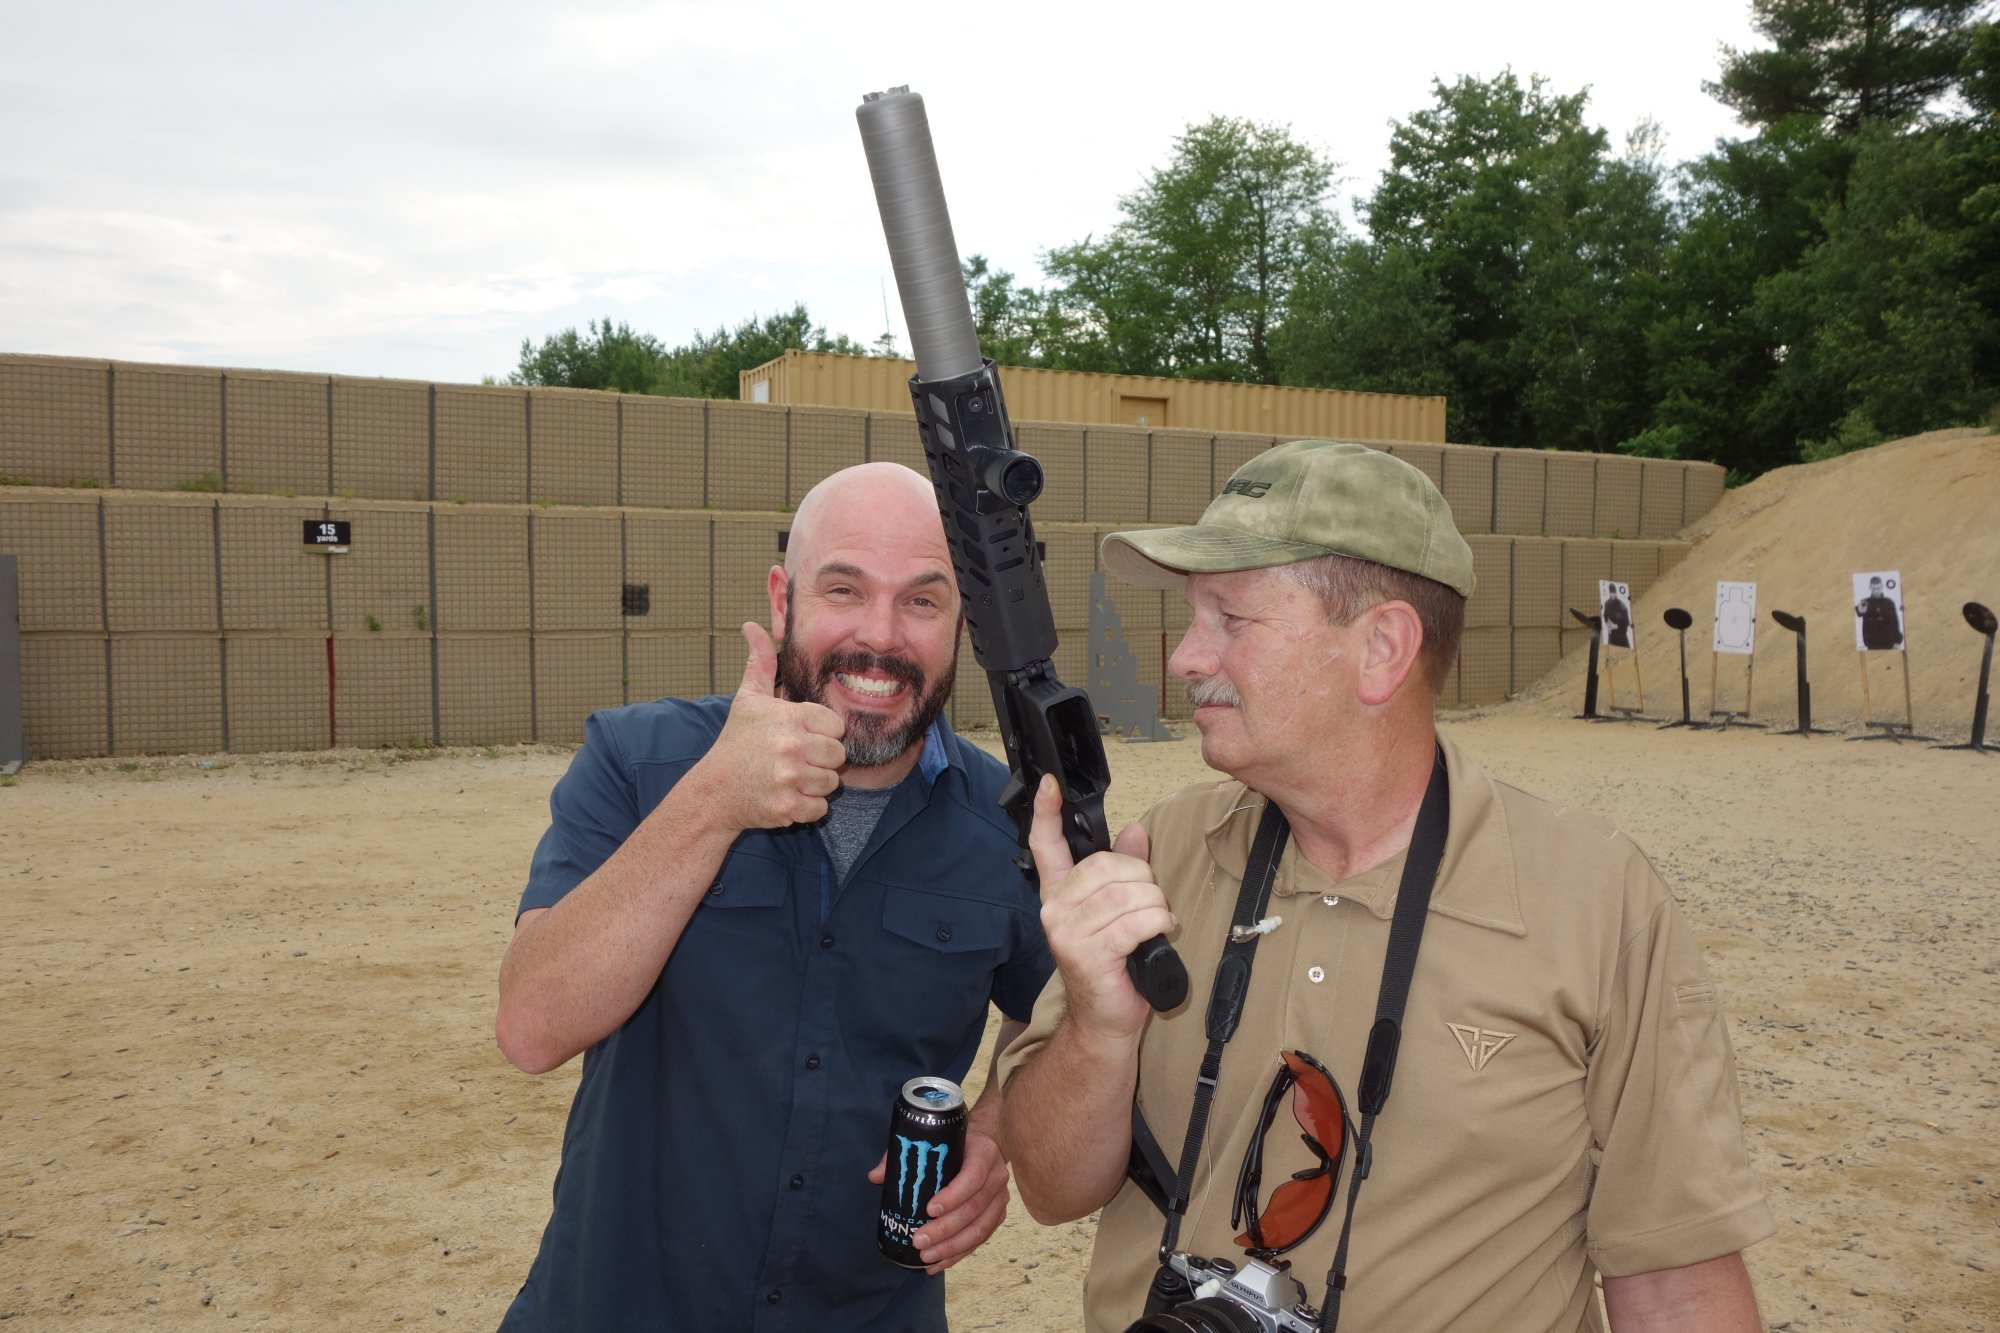 SIG SAUER SIG MCX Multi Caliber AR Assault Rifle Carbine SBR 300 Blackout 300BLK Suppressed Kevin Brittingham Thumbs Up and Smiling SIG SAUER New Media Writers Event David Crane DefenseReview.com DR 1 SIG MCX LVAW (Low Visibility Assault Weapon) Black Mamba Suppressed 300 Blackout (300BLK) Piston AR Assault SBR/PDW (Short Barreled Rifle/Personal Defense Weapon) Fired on Full Auto and Semi Auto with Subsonic and Supersonic Ammo During SIG SAUER New Media Writers Event (Video!)